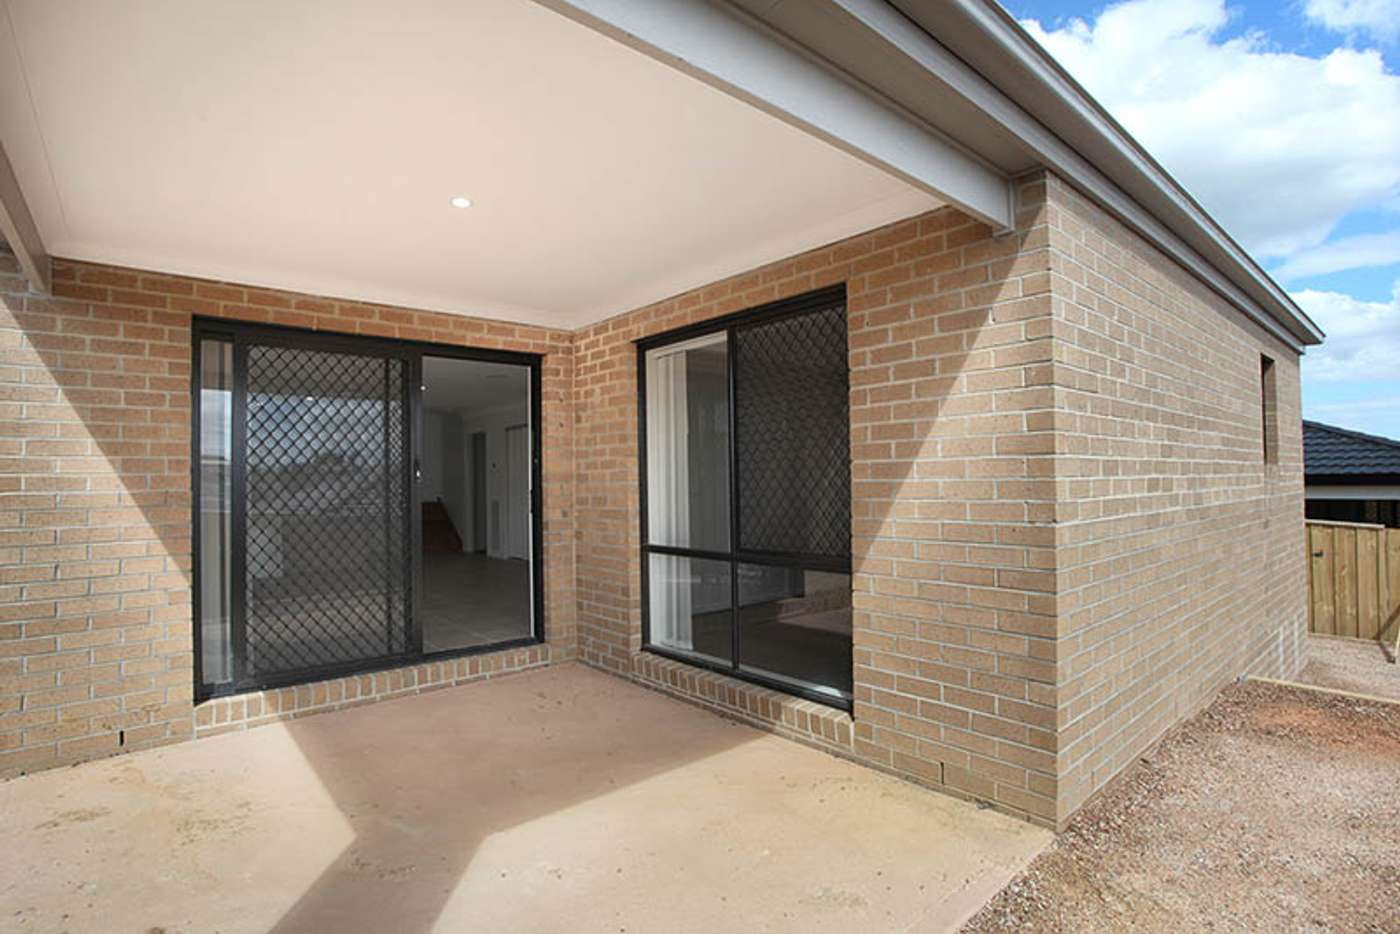 Sixth view of Homely house listing, 6 Trainor Street, Doreen VIC 3754